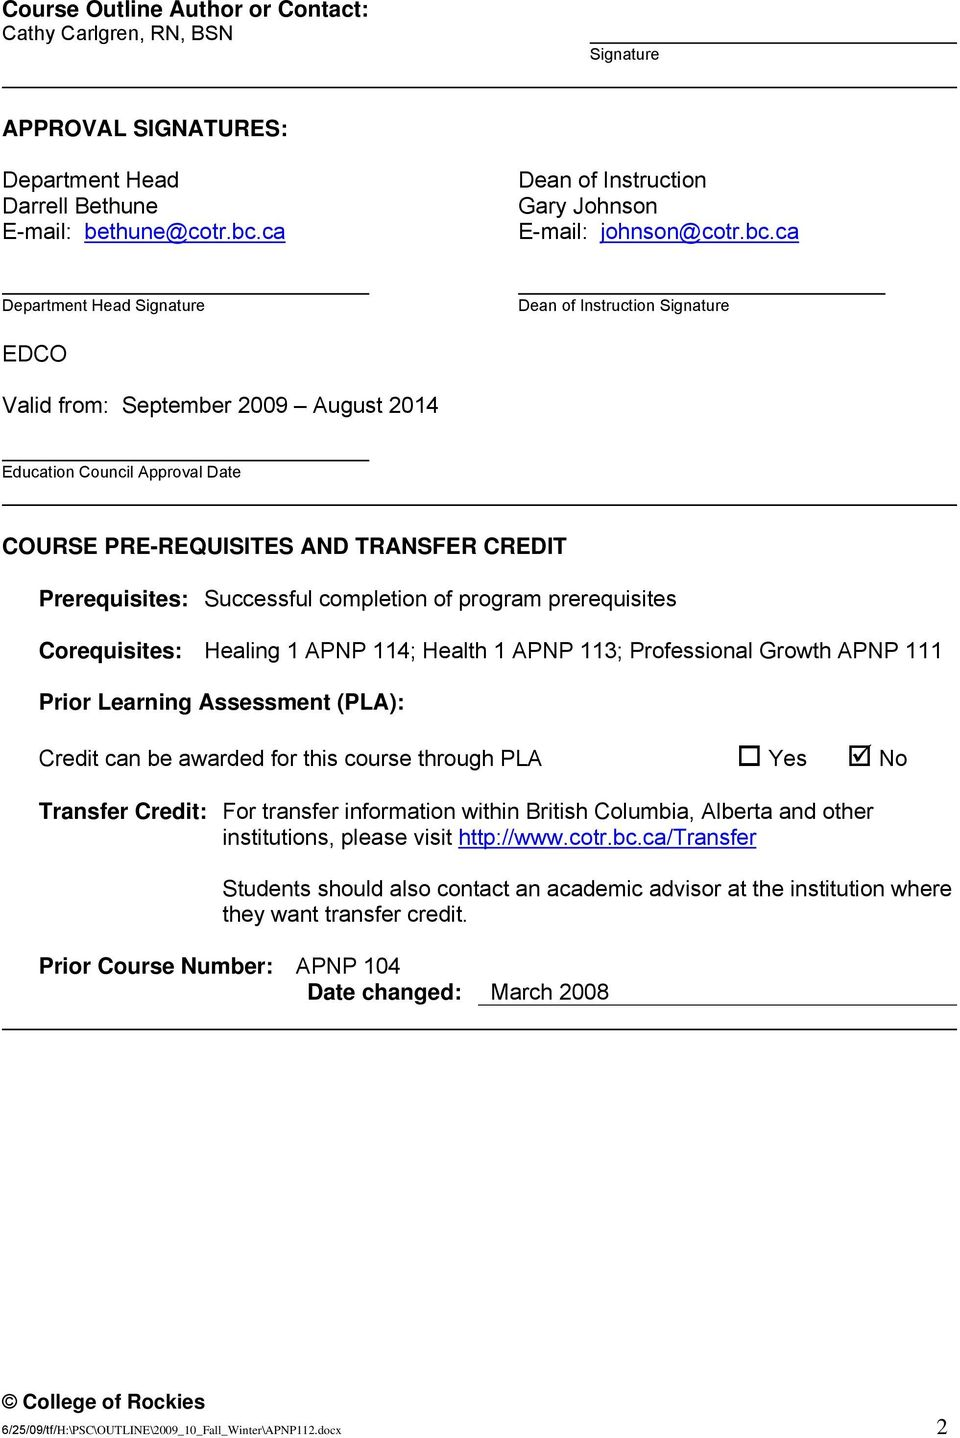 ca Department Head Signature Dean of Instruction Signature EDCO Valid from: September 2009 August 2014 Education Council Approval Date COURSE PRE-REQUISITES AND TRANSFER CREDIT Prerequisites: